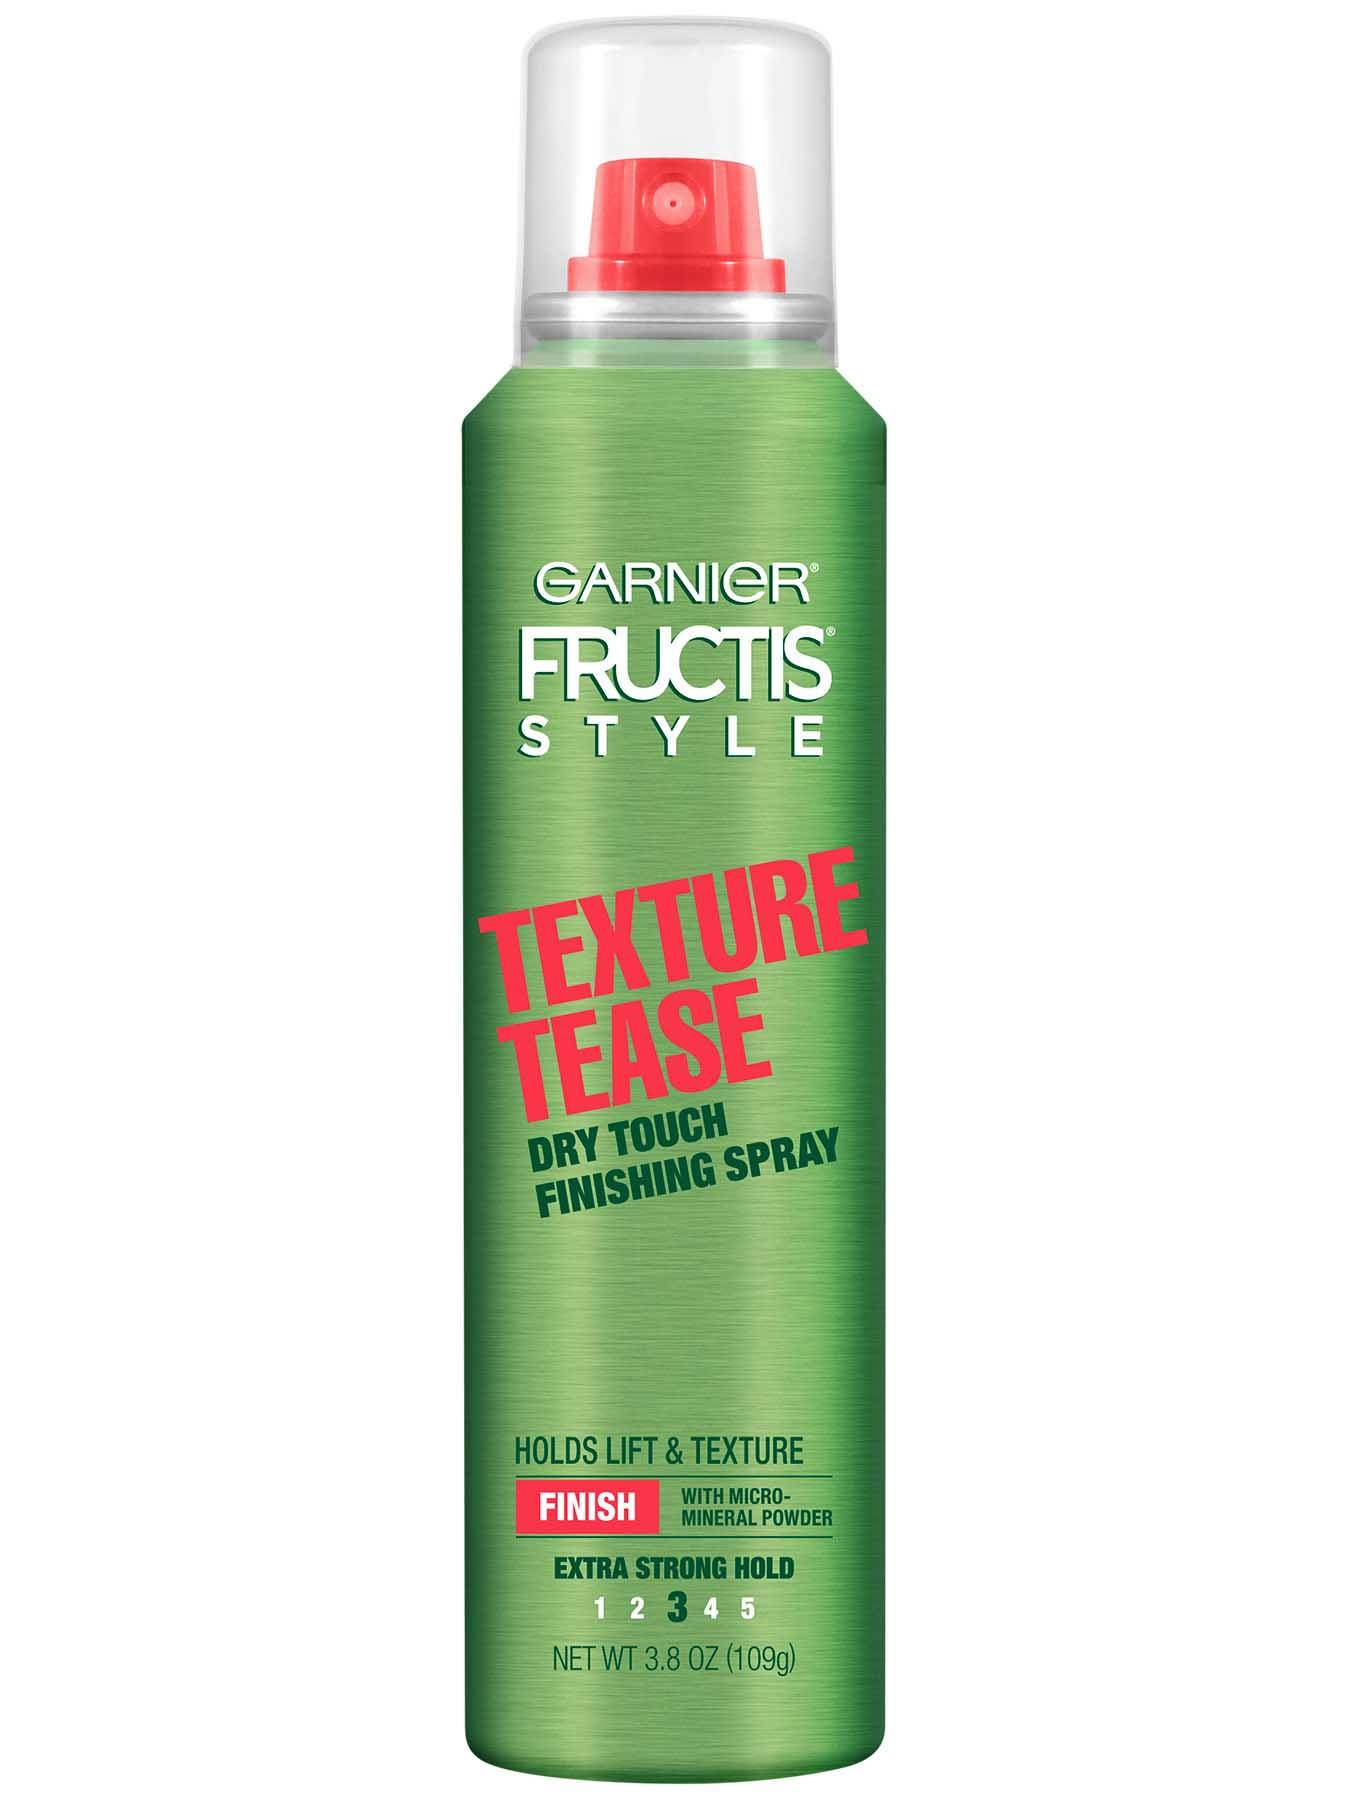 Front view of Texture Tease Dry Touch Finishing Spray.